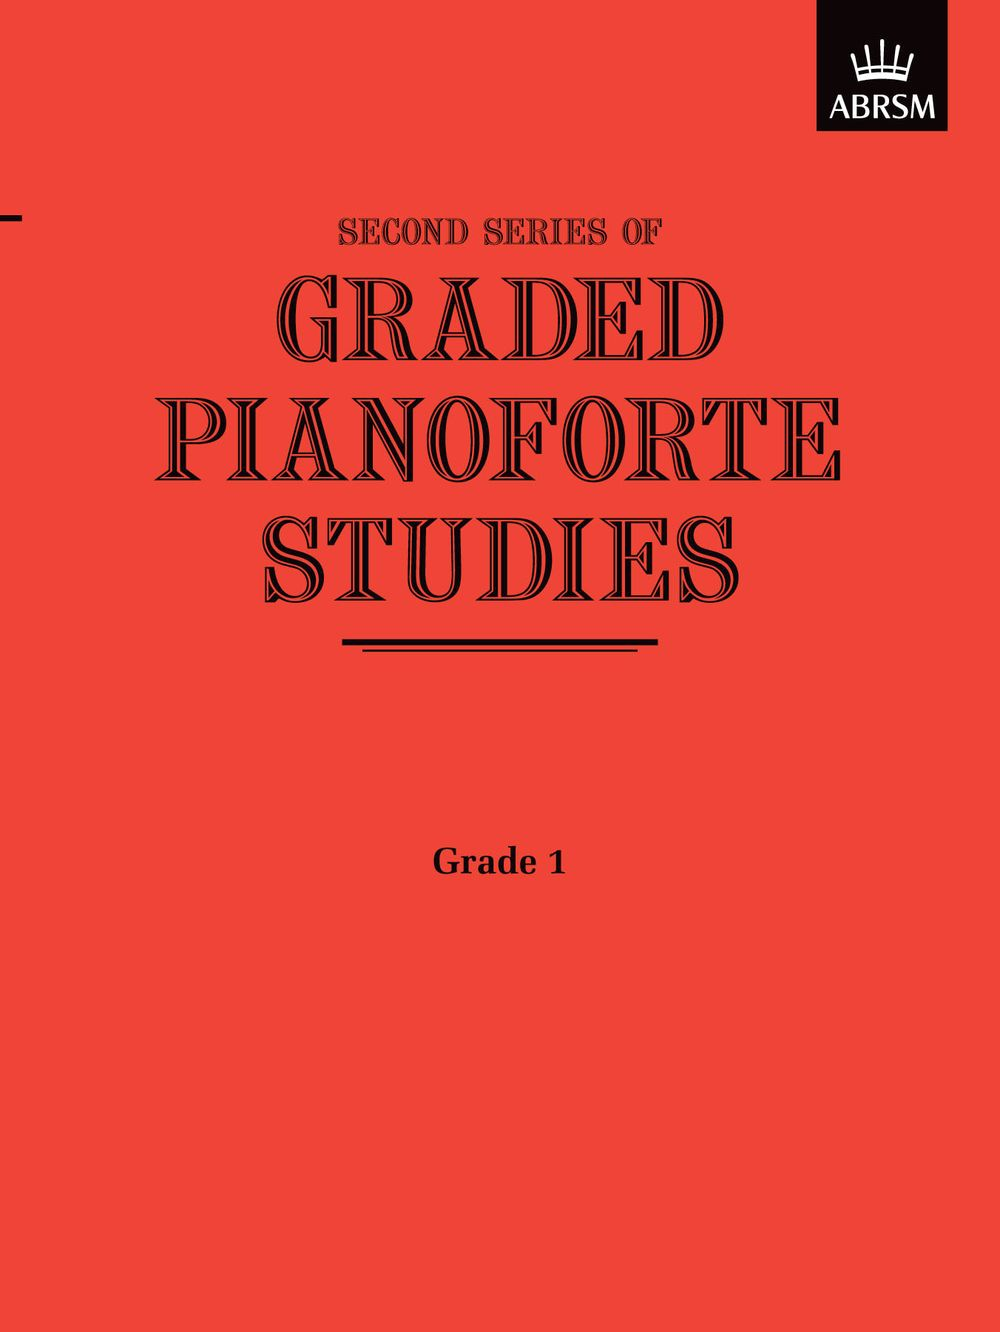 Graded Pianoforte Studies  Second Series  Grade 1: Piano: Study